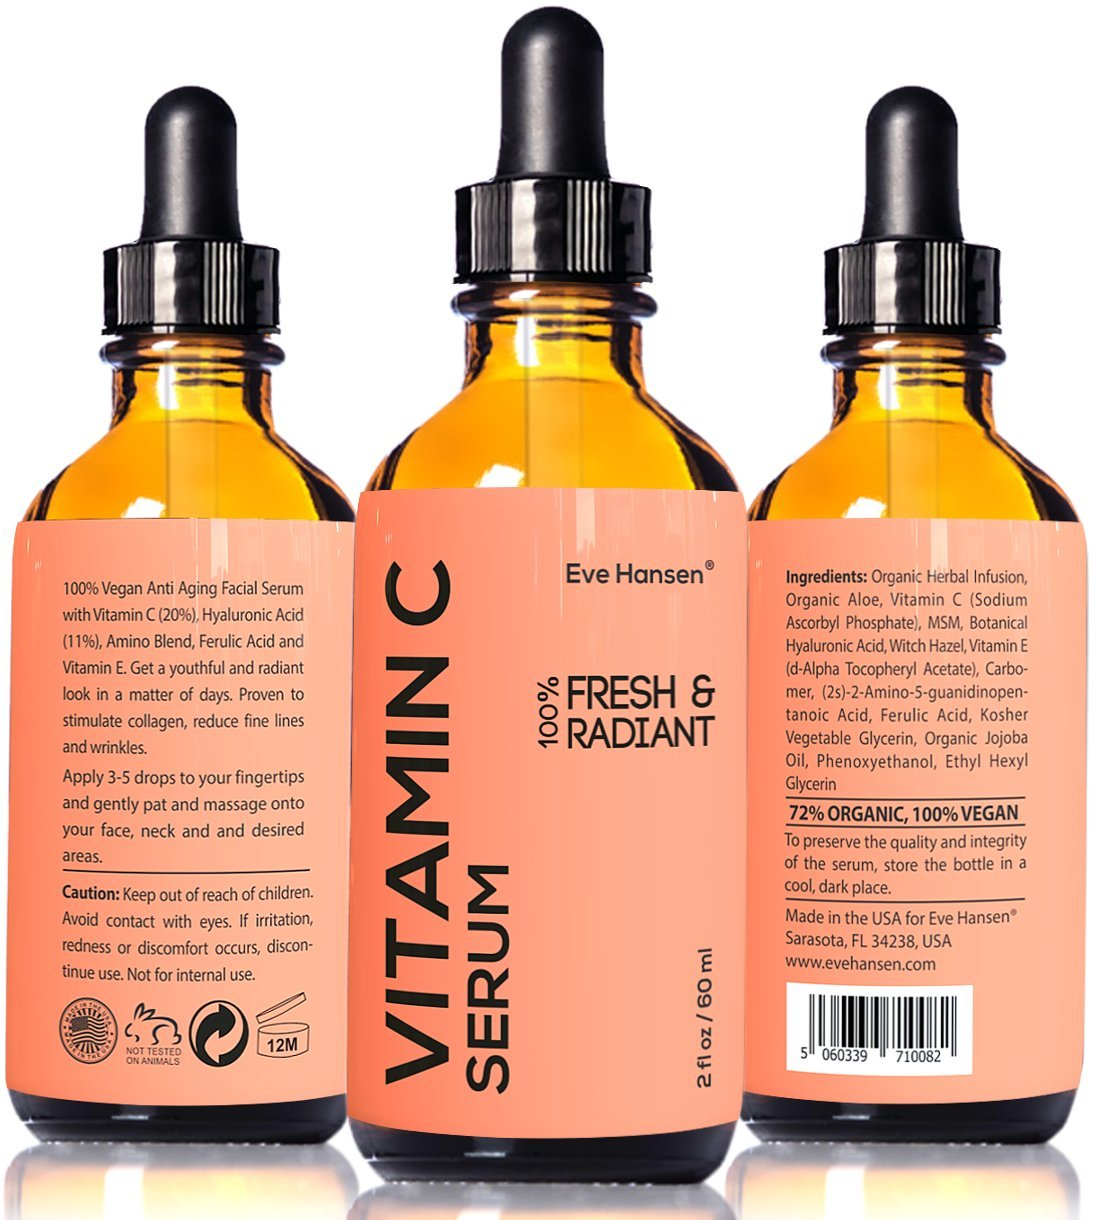 Eve Hansen Vitamin C Serum